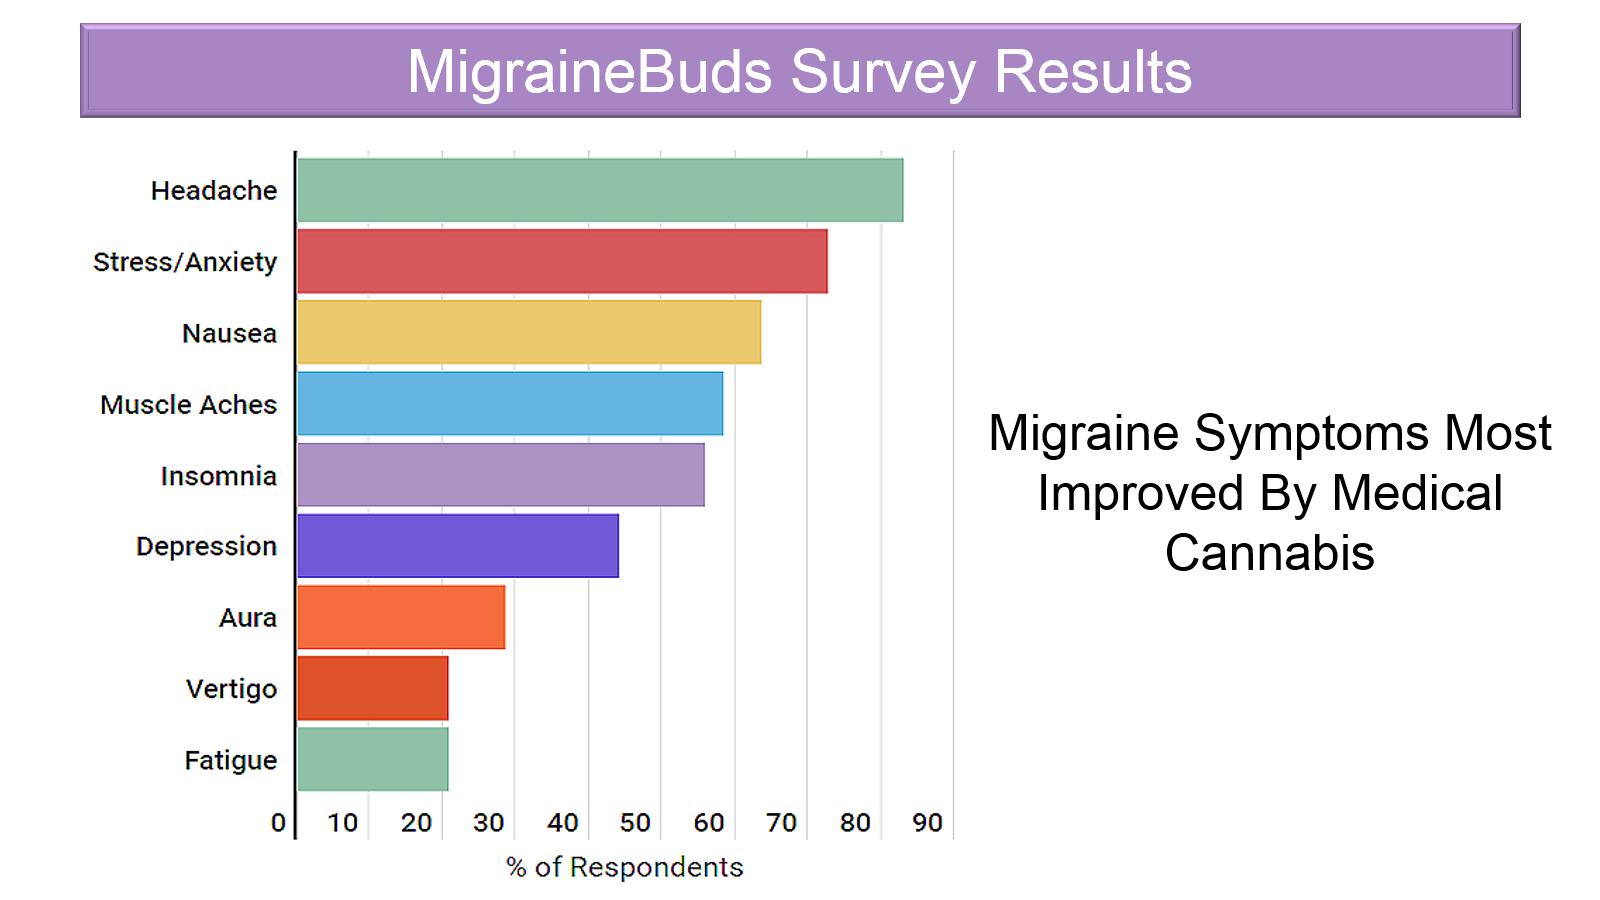 Survey Results - migraine symptoms most improved by medical cannabis